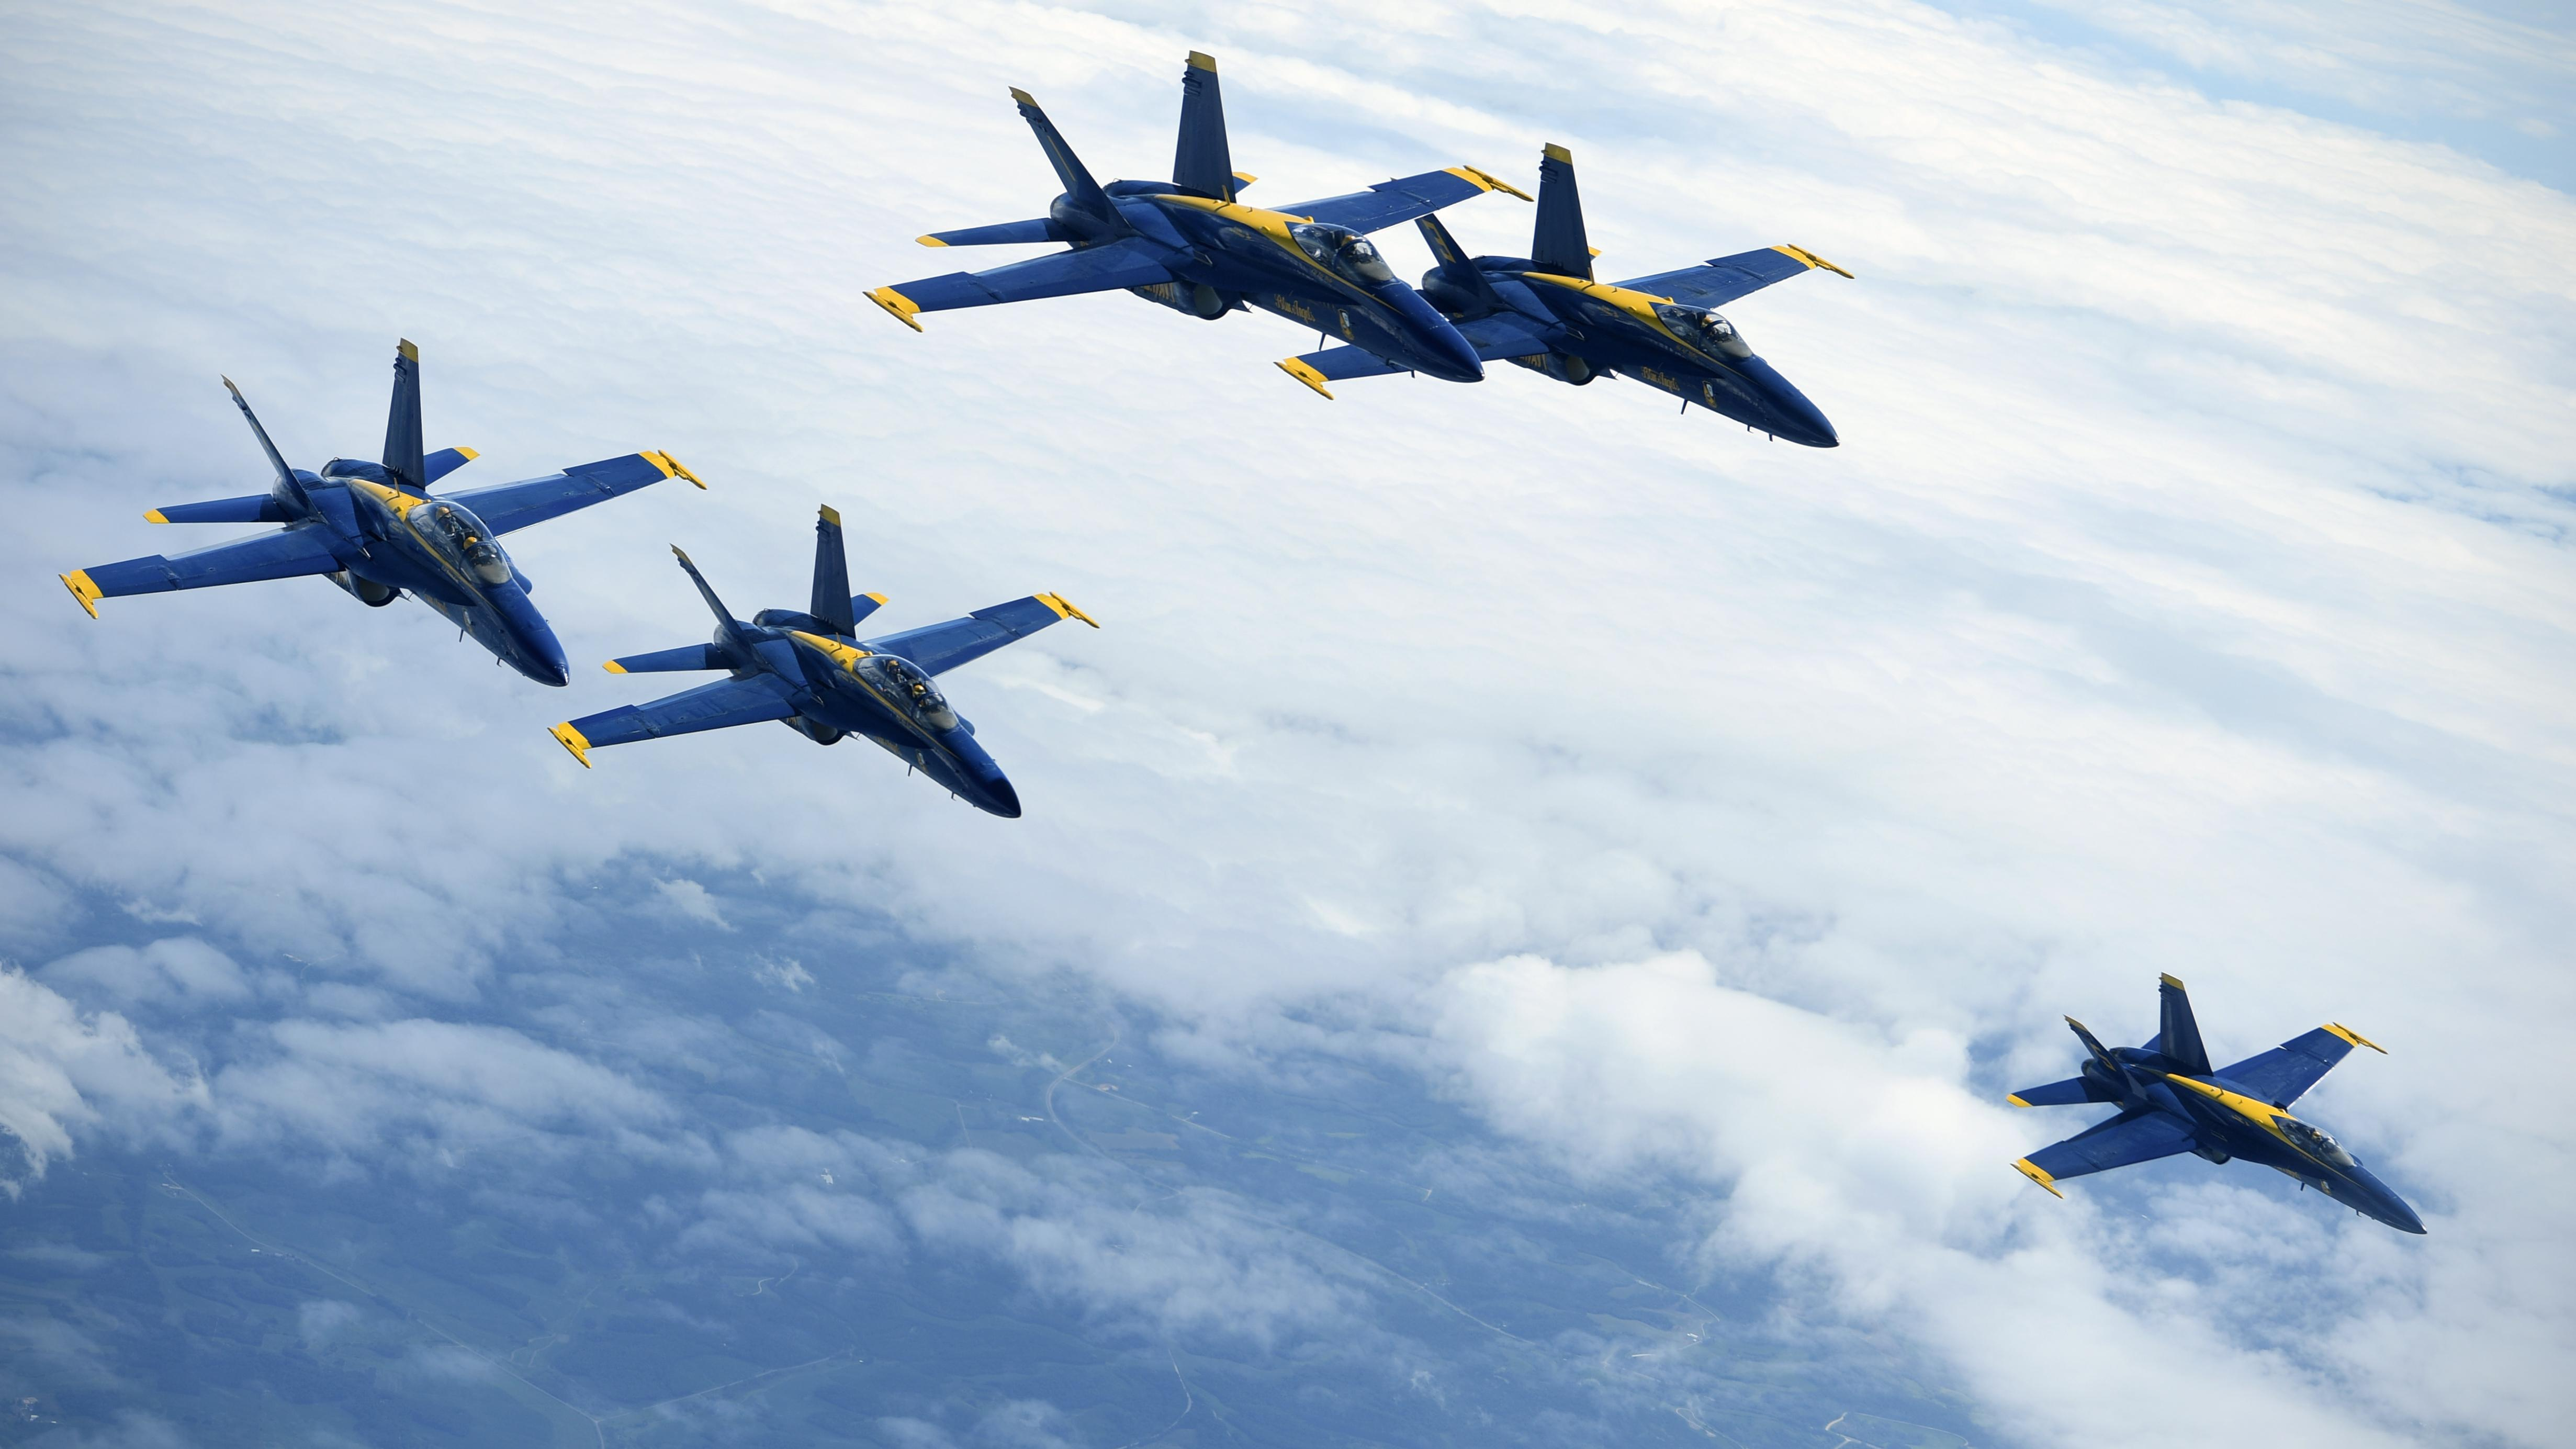 Five of the U.S. Navy F/A-18 Hornet Blue Angels from Pensacola Naval Air Station, Florida, fly beside a 434th Air Refueling Wing KC-135R Stratotanker over the Midwest July 25, 2018. Grissom represented the Hoosier Wing's air refueling capabilities and participated in the annual AirVenture air show with the Blue Angels at Wittman Regional Airport in Oshkosh. (U.S. Air Force photo by Staff Sgt. Katrina Heikkinen)